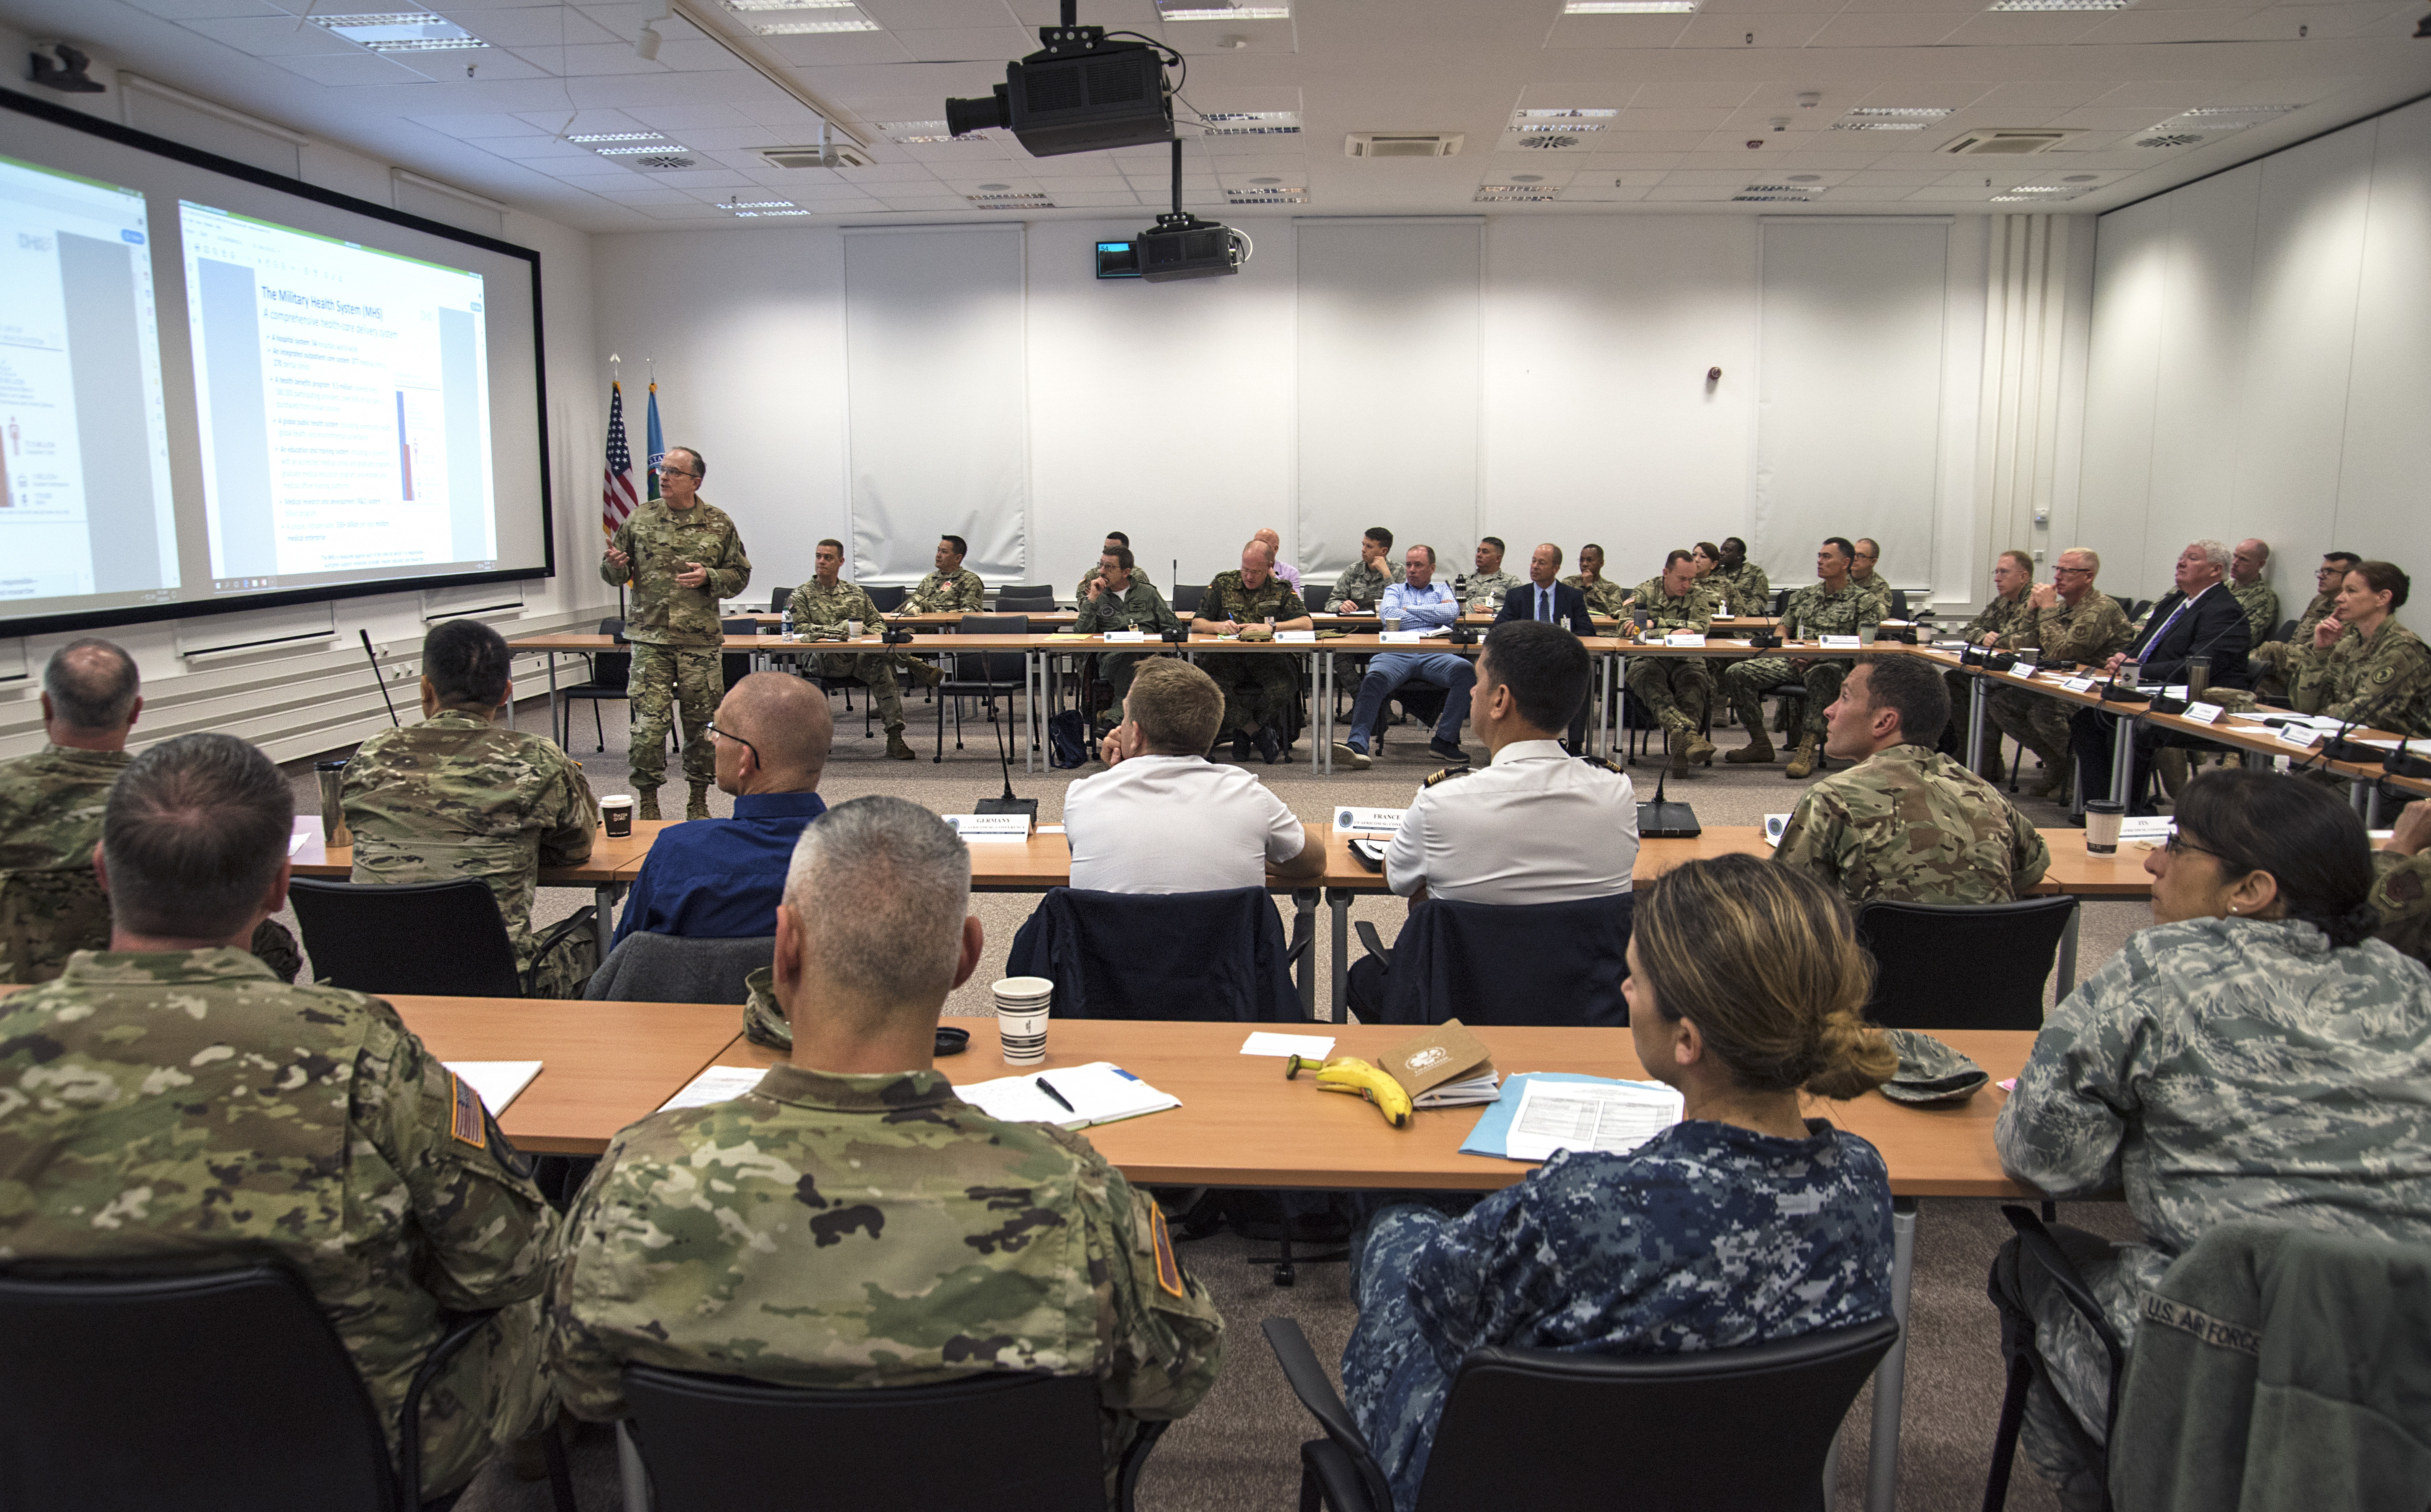 Attendees listen to a brief on the upcoming changes to the military health system during day one of the 2019 U.S. Africa Command Command Surgeon Synchronization Conference May 28, 2019 in Stuttgart, Germany. The conference brought together medical professionals from across the command, and interagency and foreign partners, to enable collaboration and to discuss areas of concern within the medical enterprise in Africa. (U.S. Navy photo by Mass Communication Specialist 1st Class Christopher Hurd/Released)